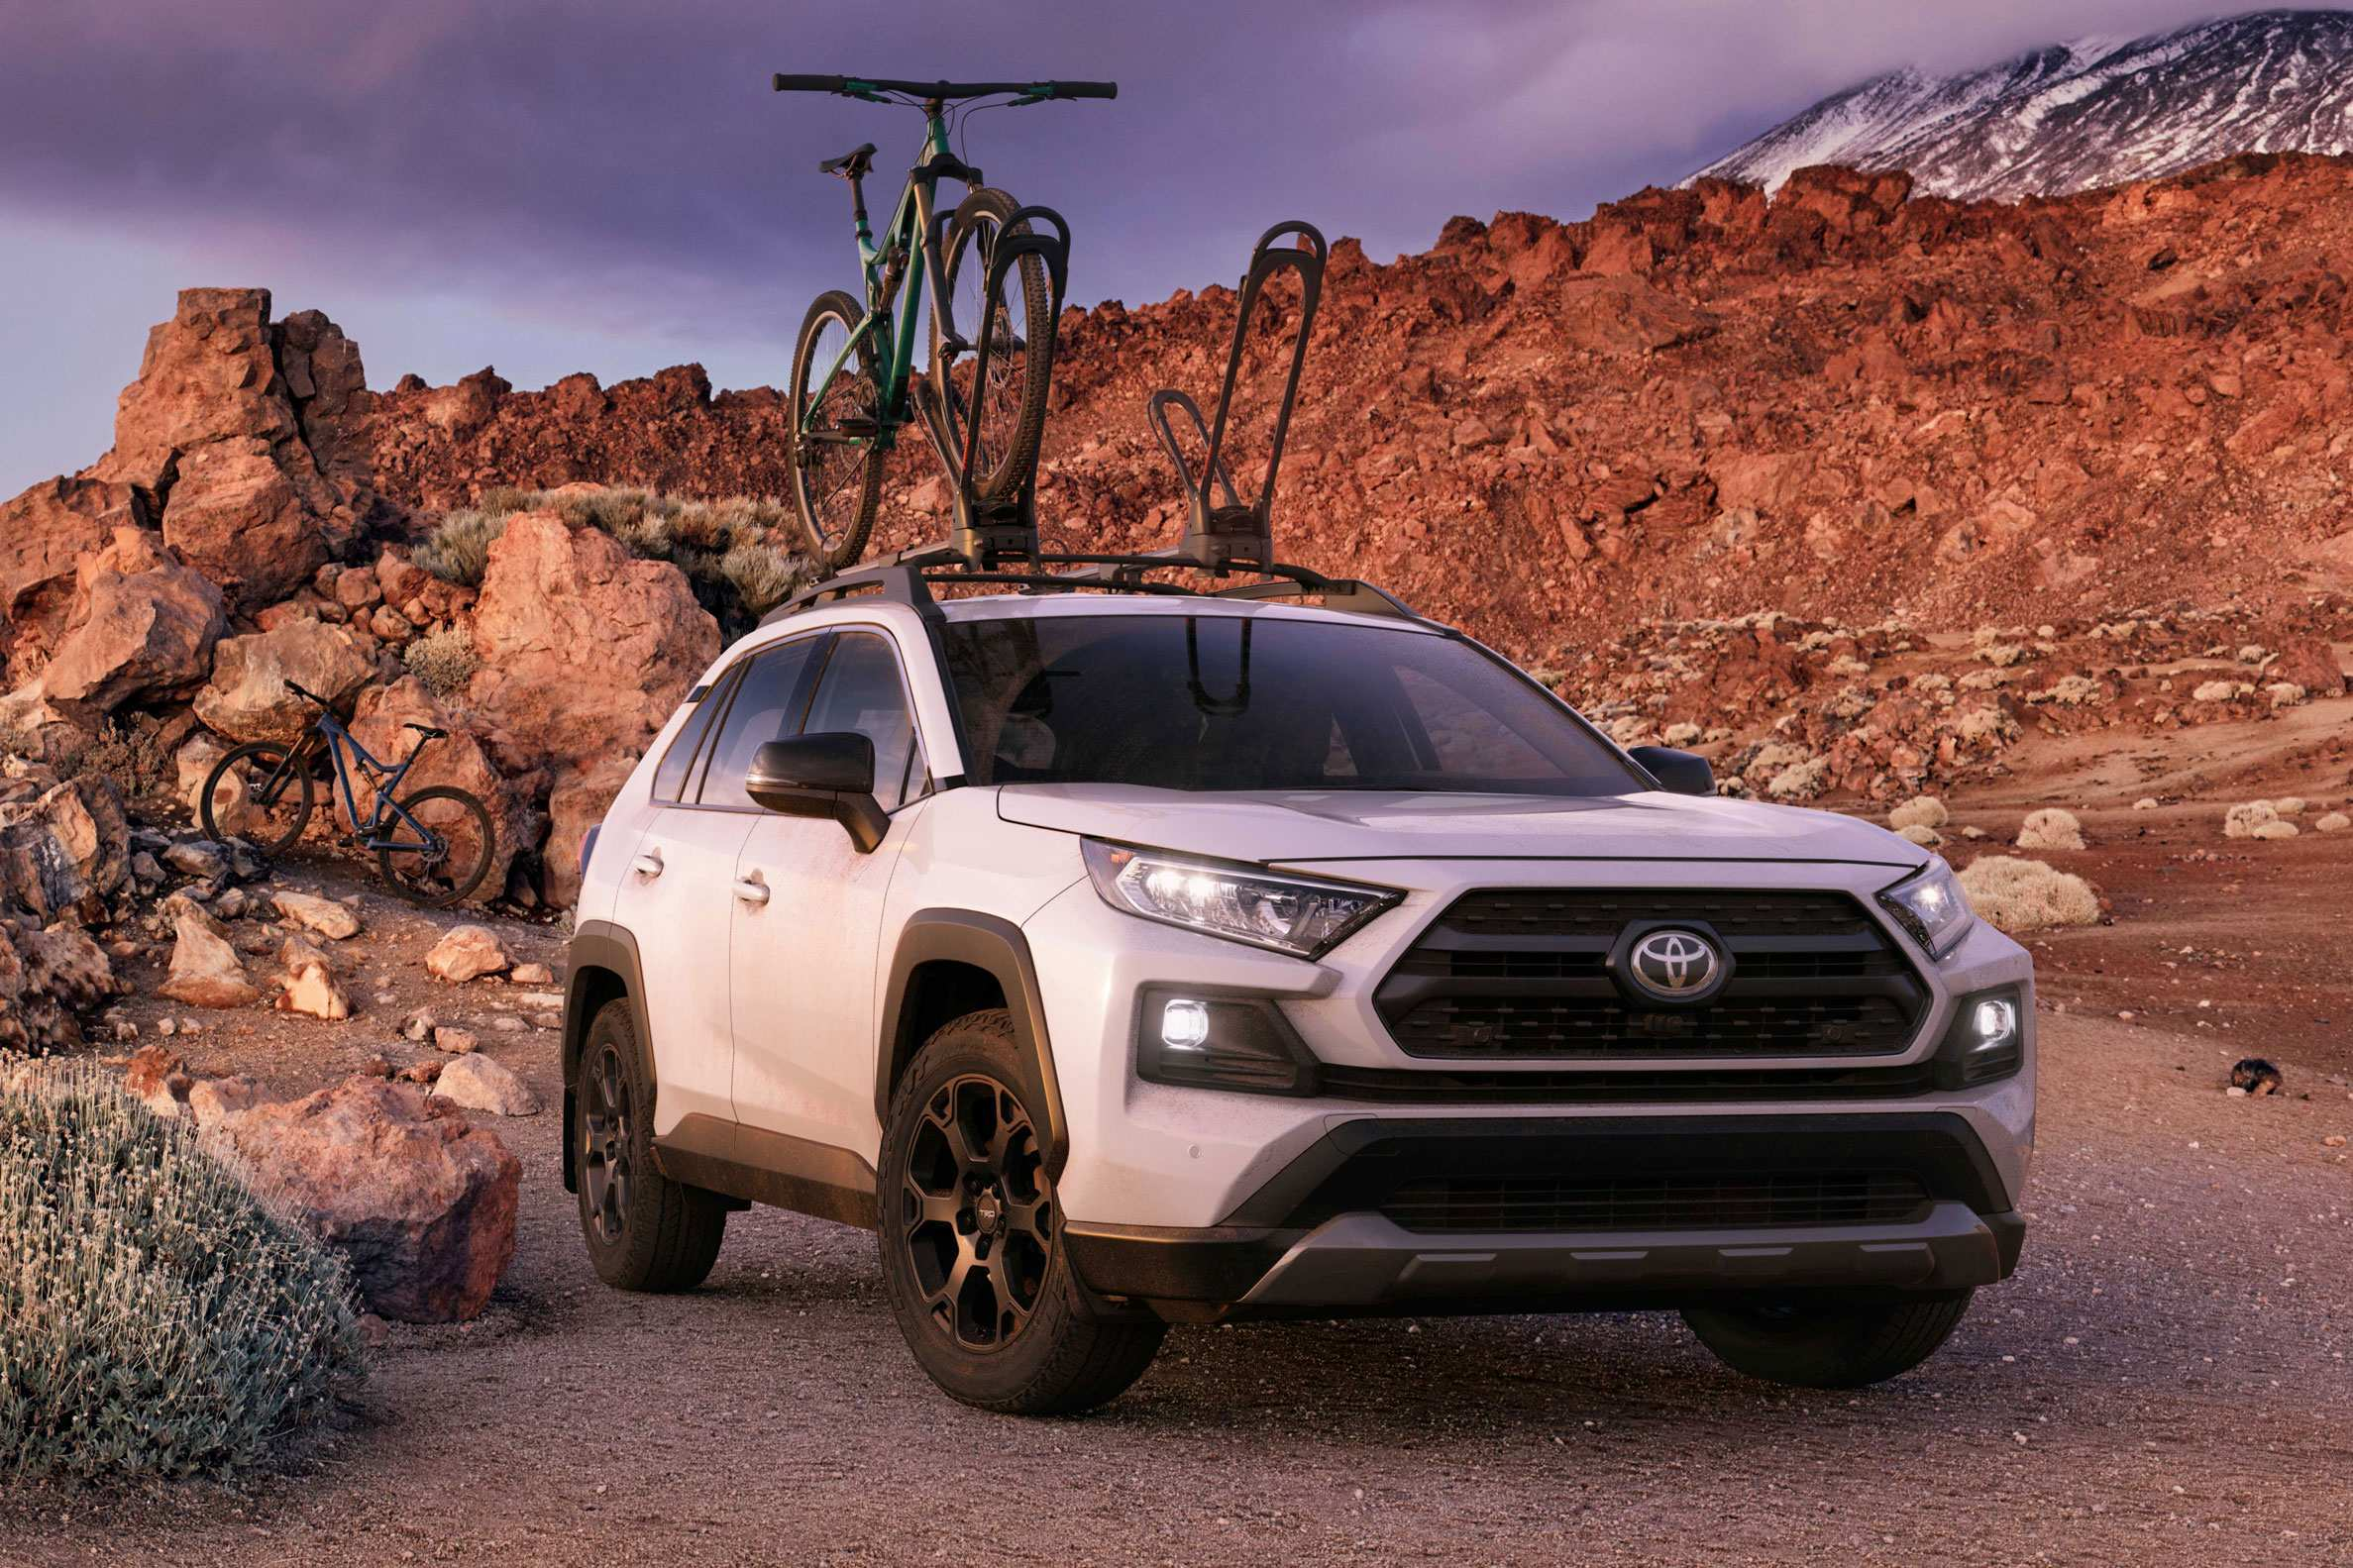 76 New 2020 Toyota Rav4 Ground Clearance Configurations with 2020 Toyota Rav4 Ground Clearance